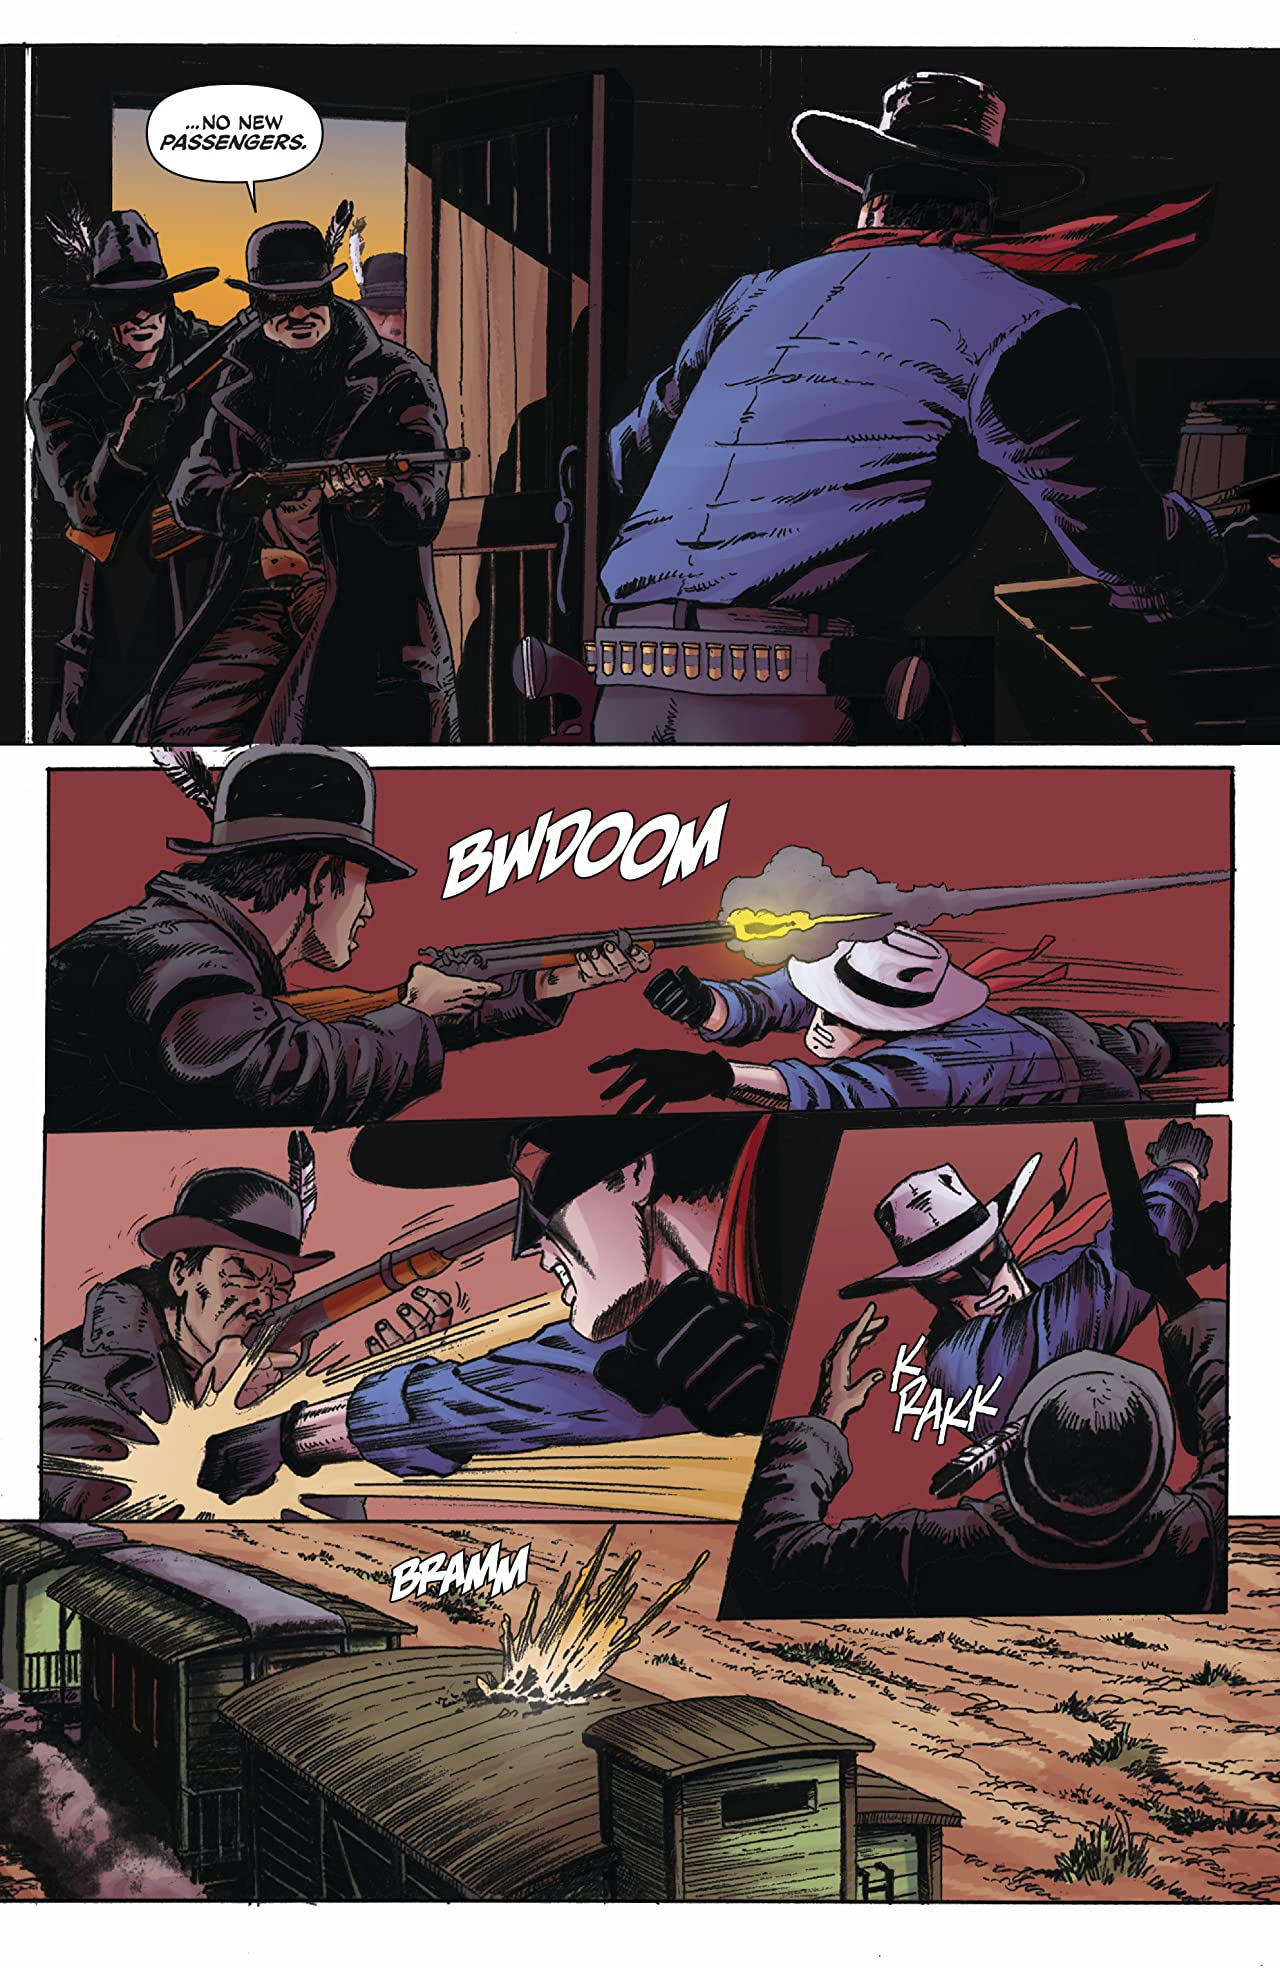 The Lone Ranger Vol. 2 #24